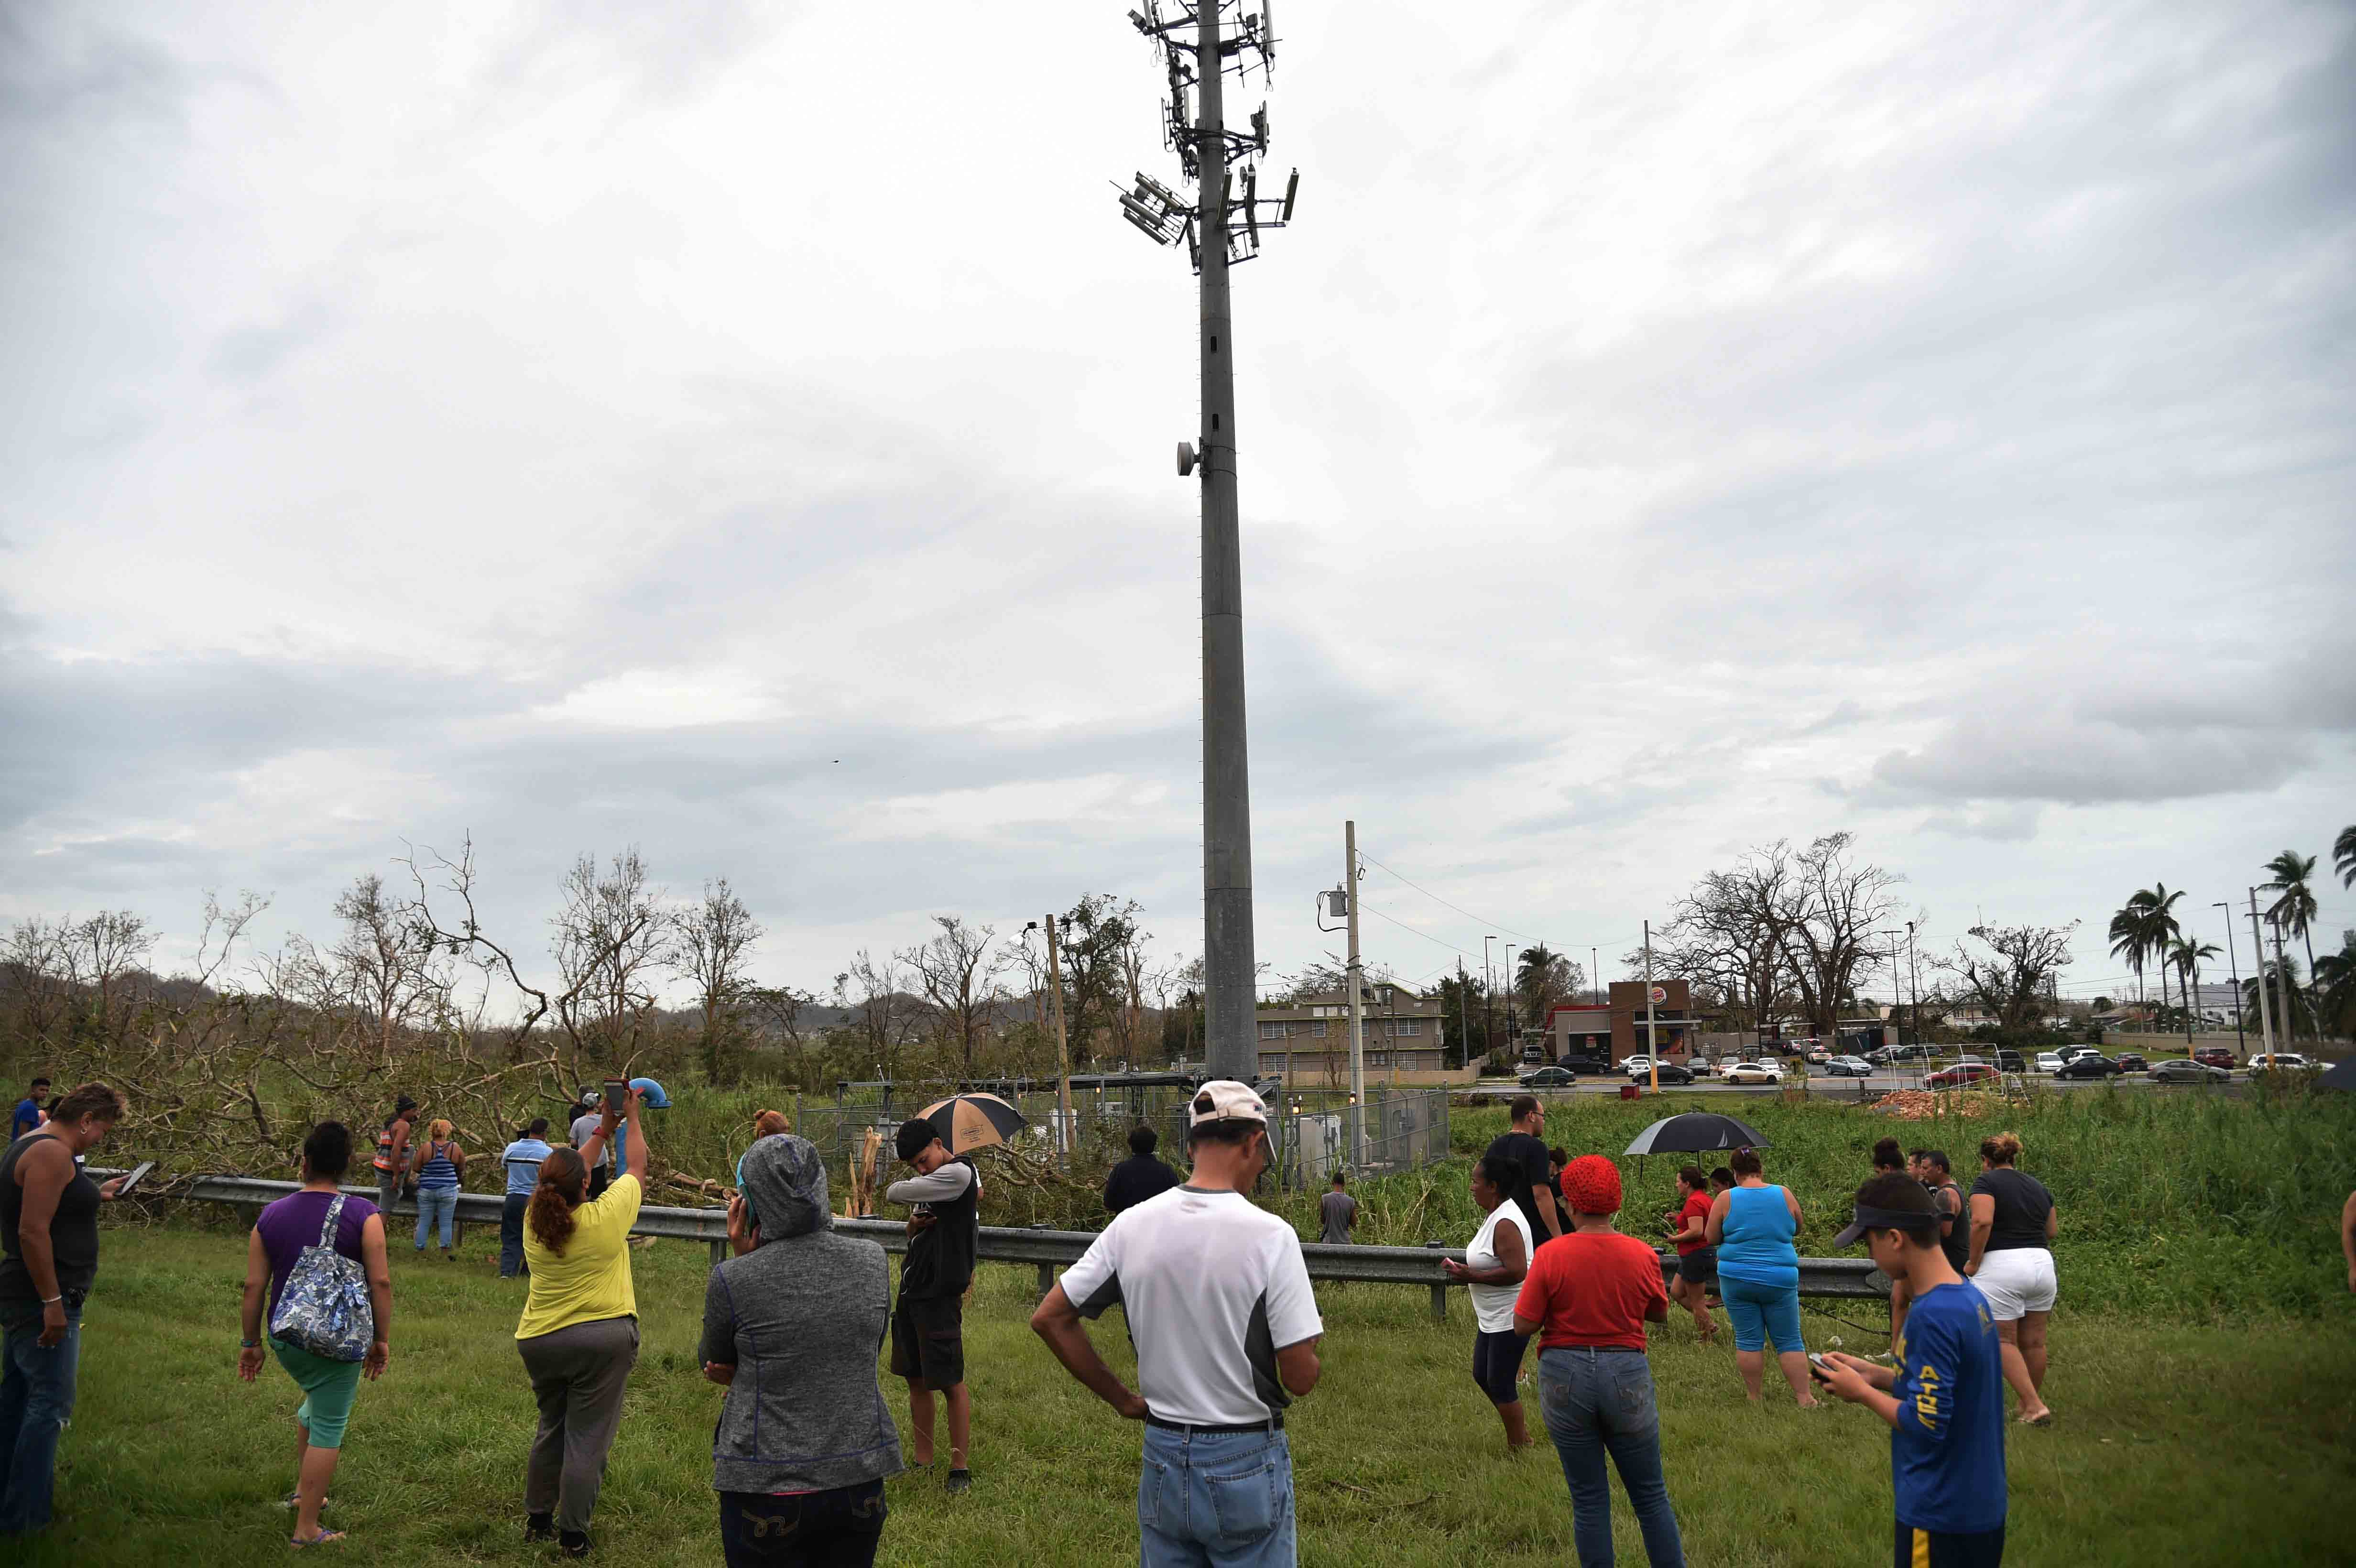 People try to get a signal before a celular communications tower on the expressway in Dorado, Puerto Rico, on September 22, 2017 in the aftermath of Hurricane Maria.